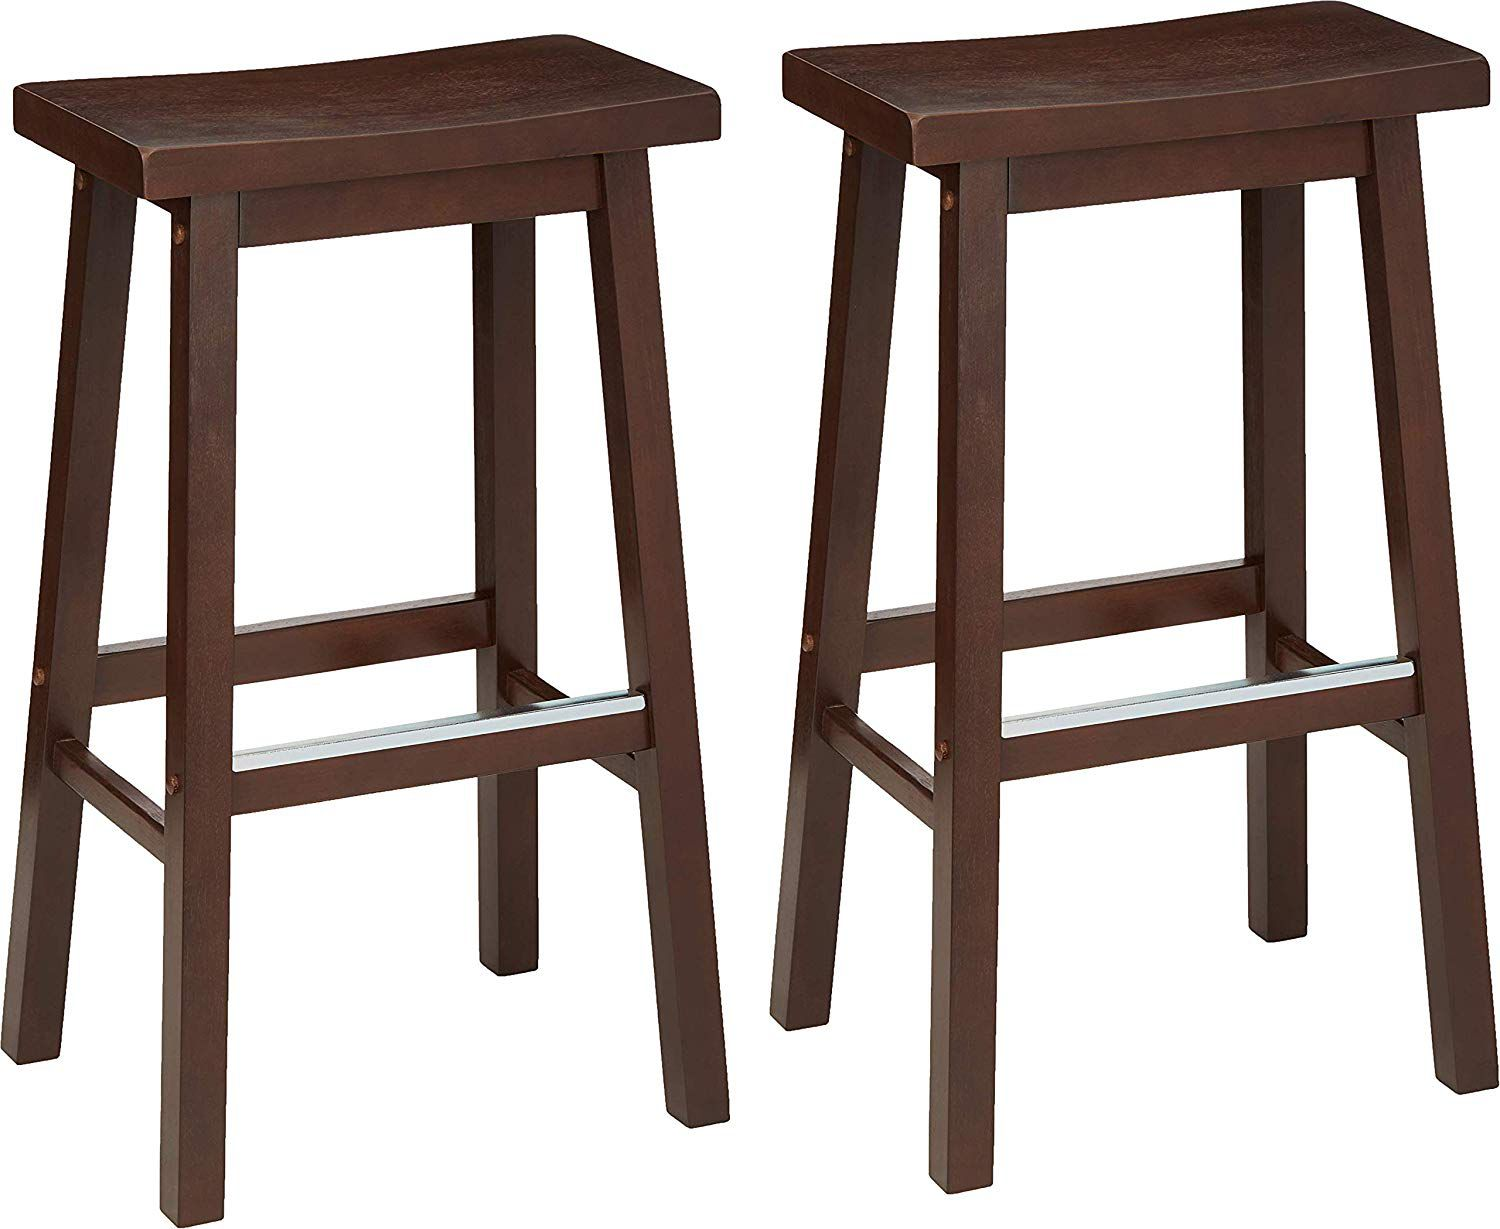 Classic Solid Wood Saddle-Seat Kitchen Counter Stool